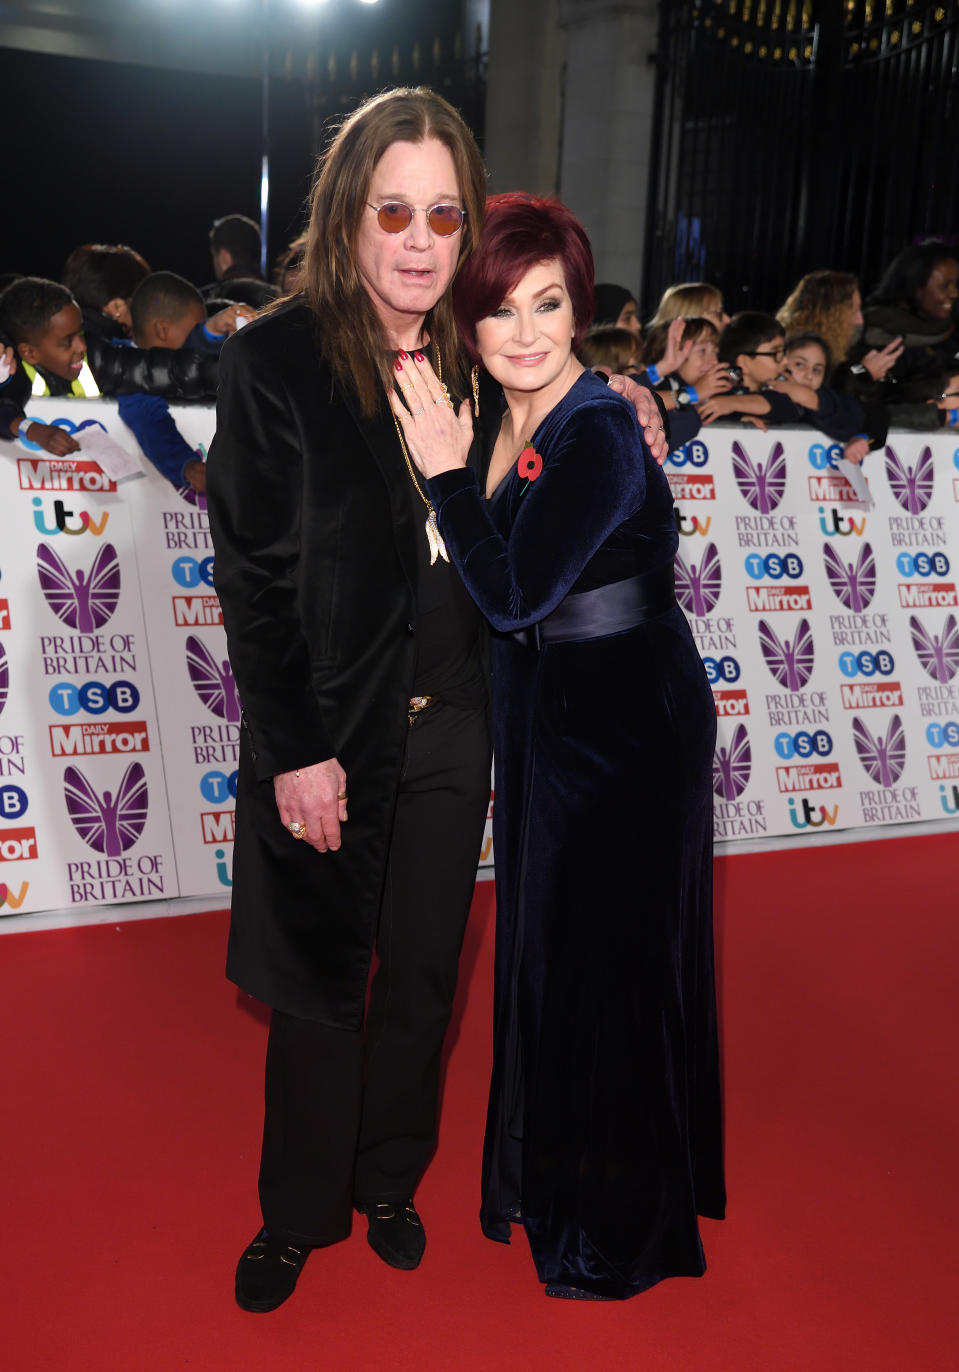 LONDON, ENGLAND - OCTOBER 30:  Ozzy Osbourne and Sharon Osbourne attend the Pride Of Britain Awards at the Grosvenor House on October 30, 2017 in London, England.  (Photo by Karwai Tang/WireImage)